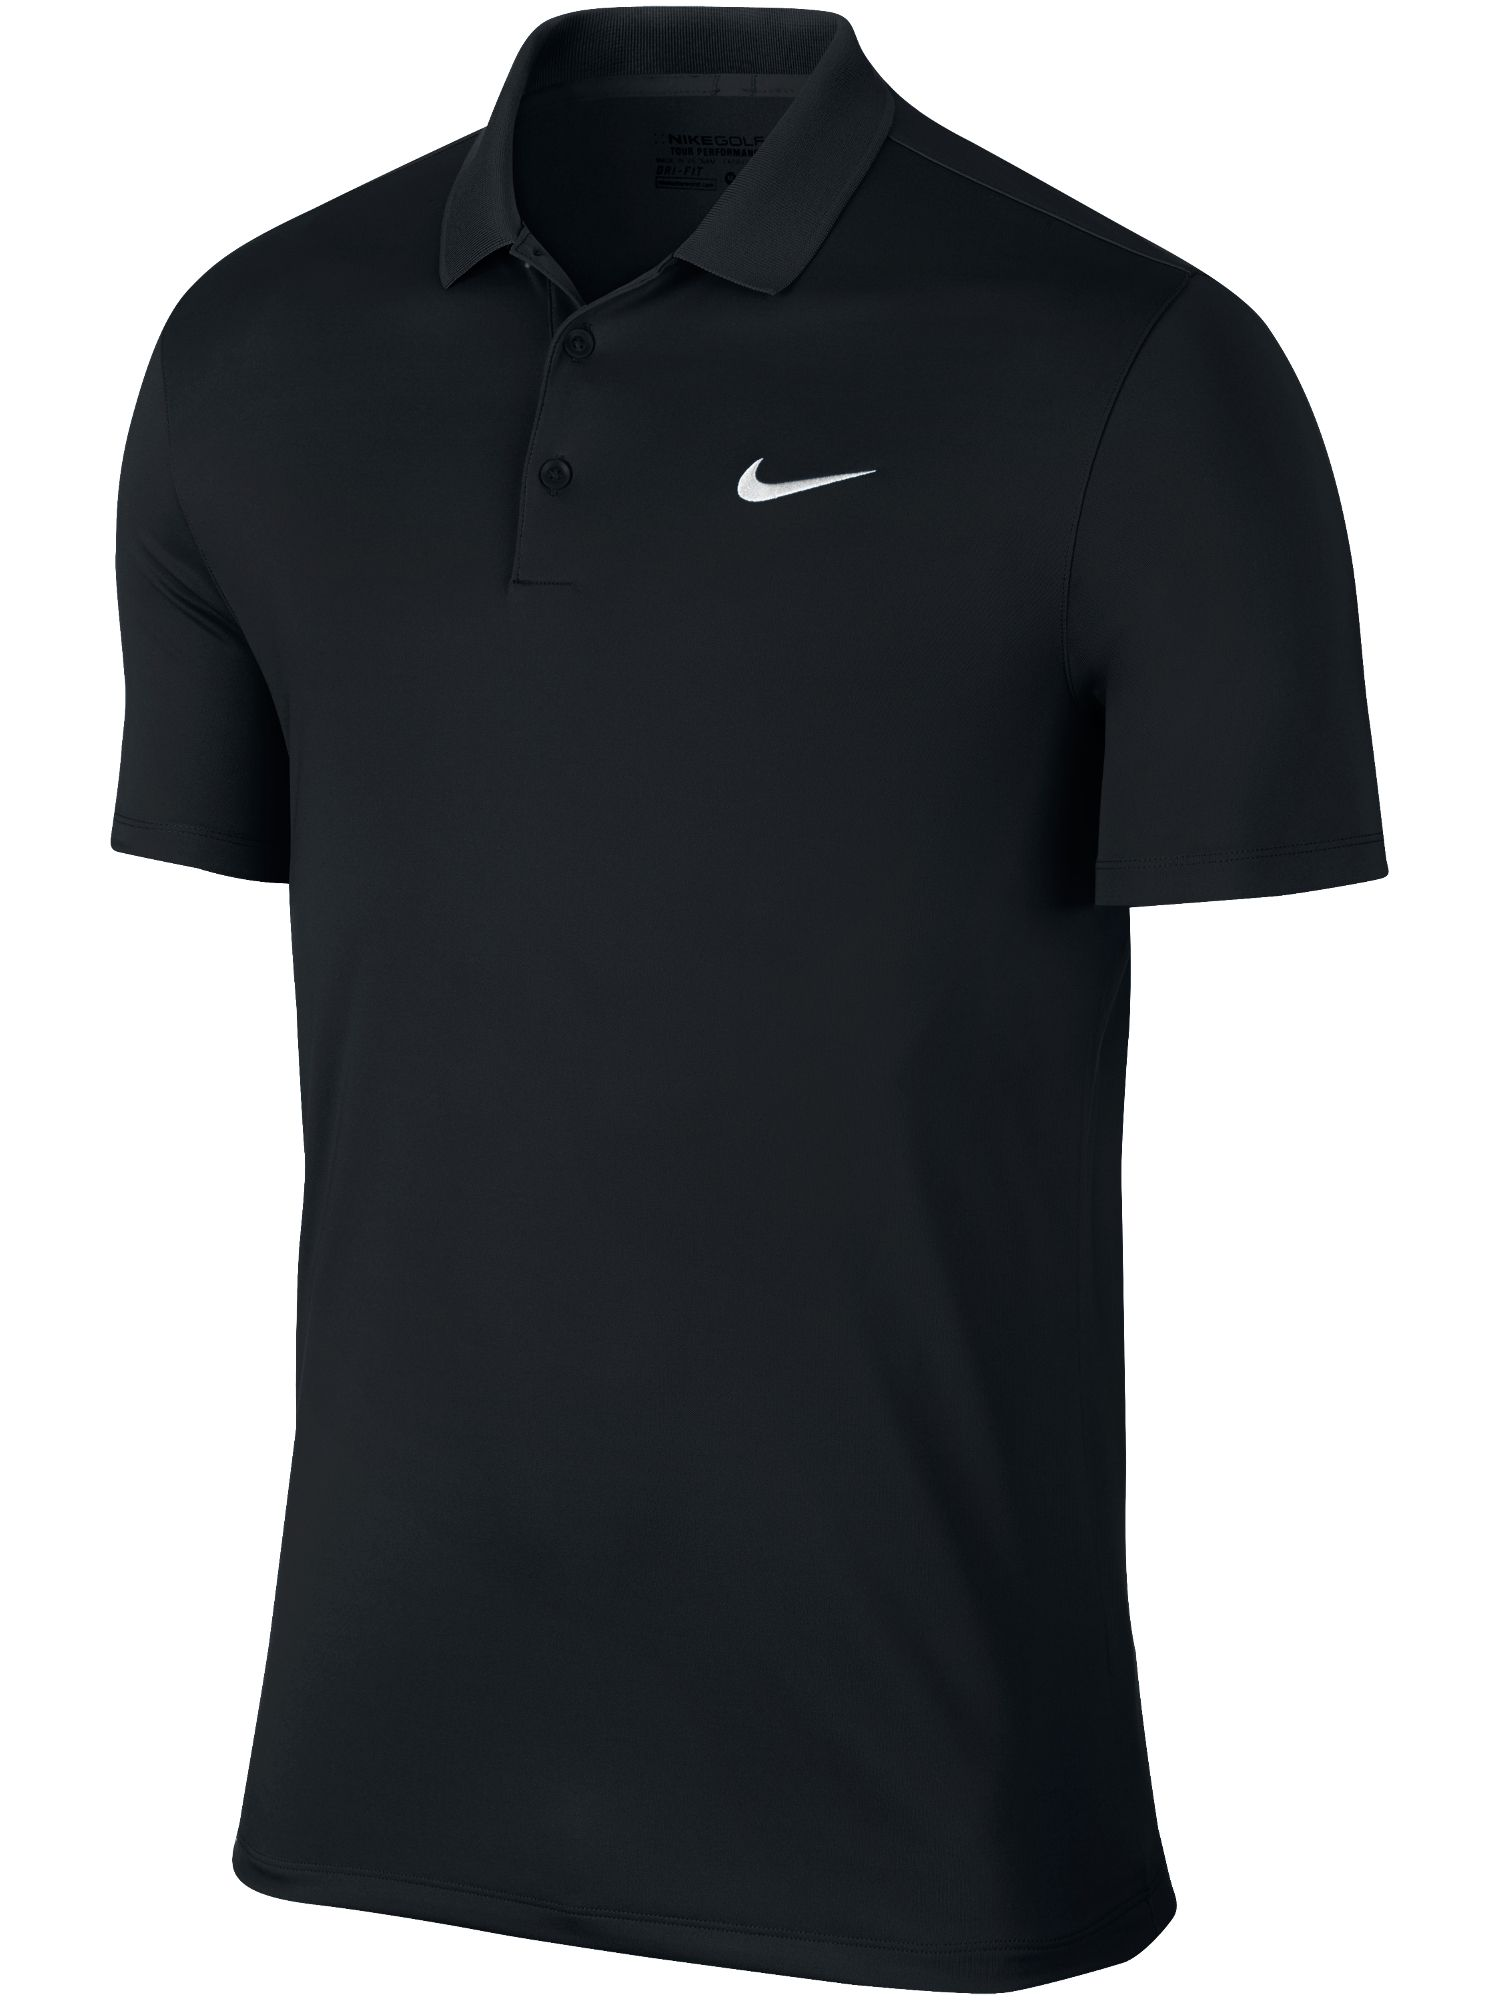 Men's Nike Golf Victory Solid Polo, Black